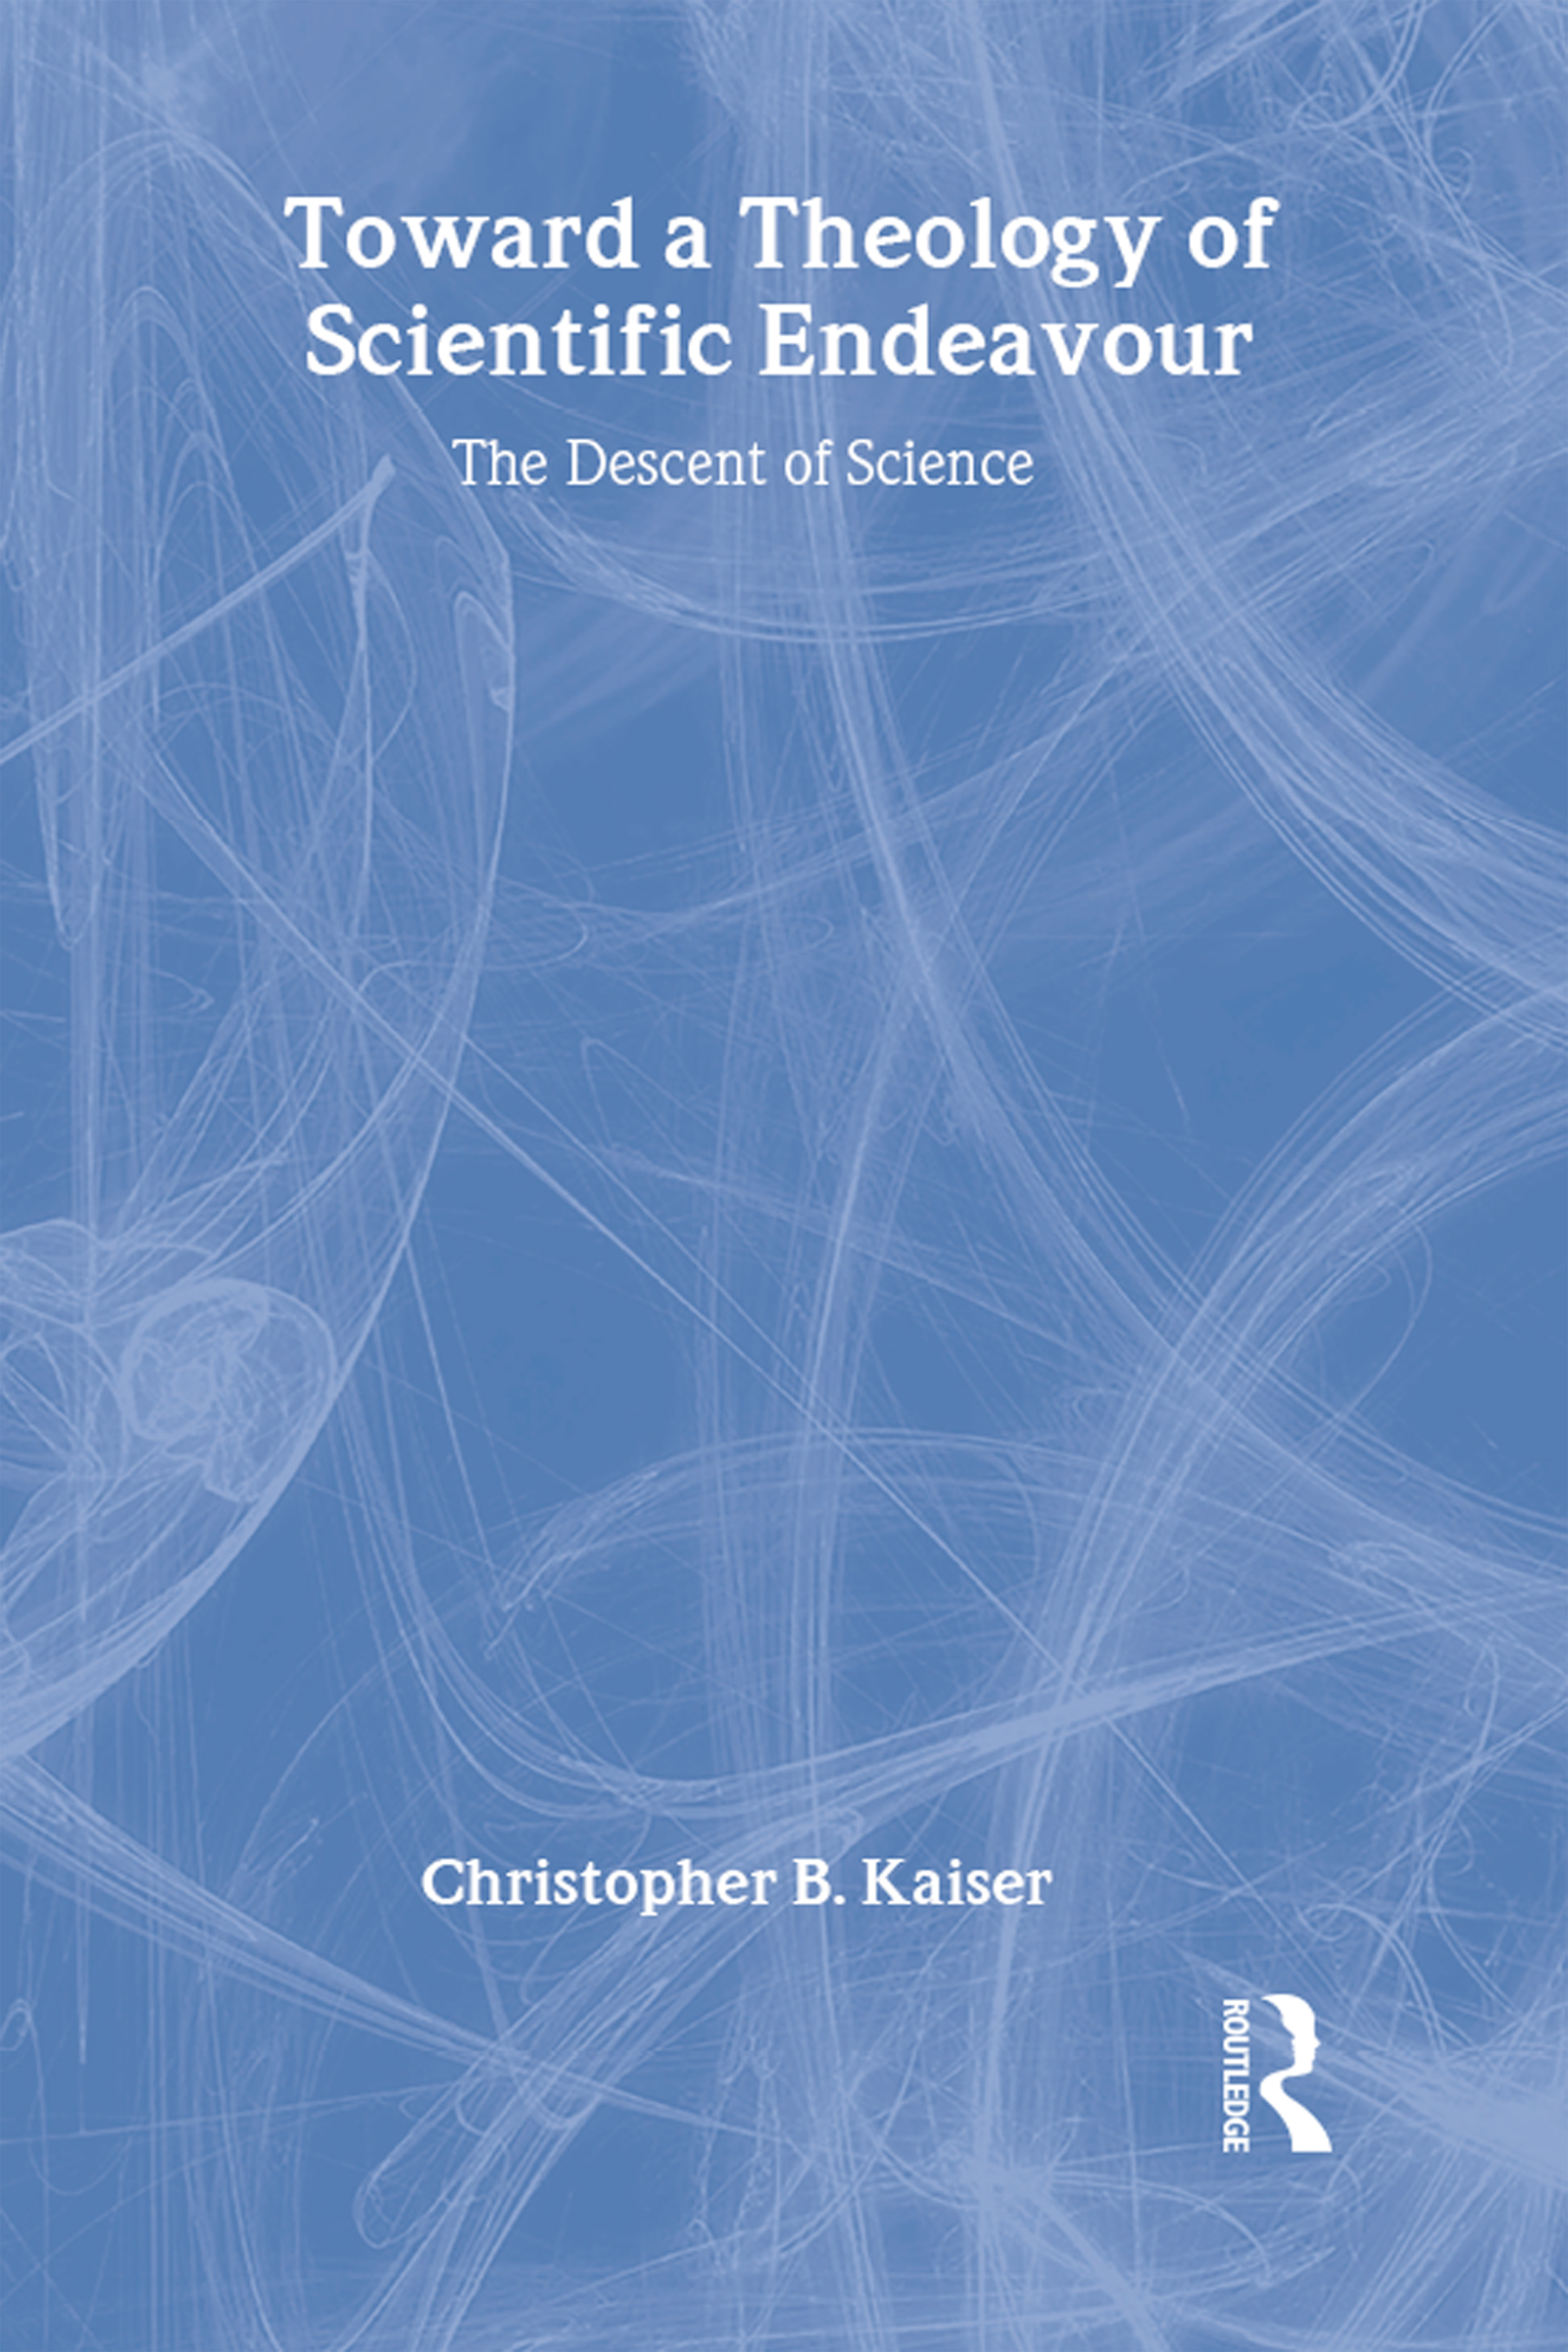 Toward a Theology of Scientific Endeavour